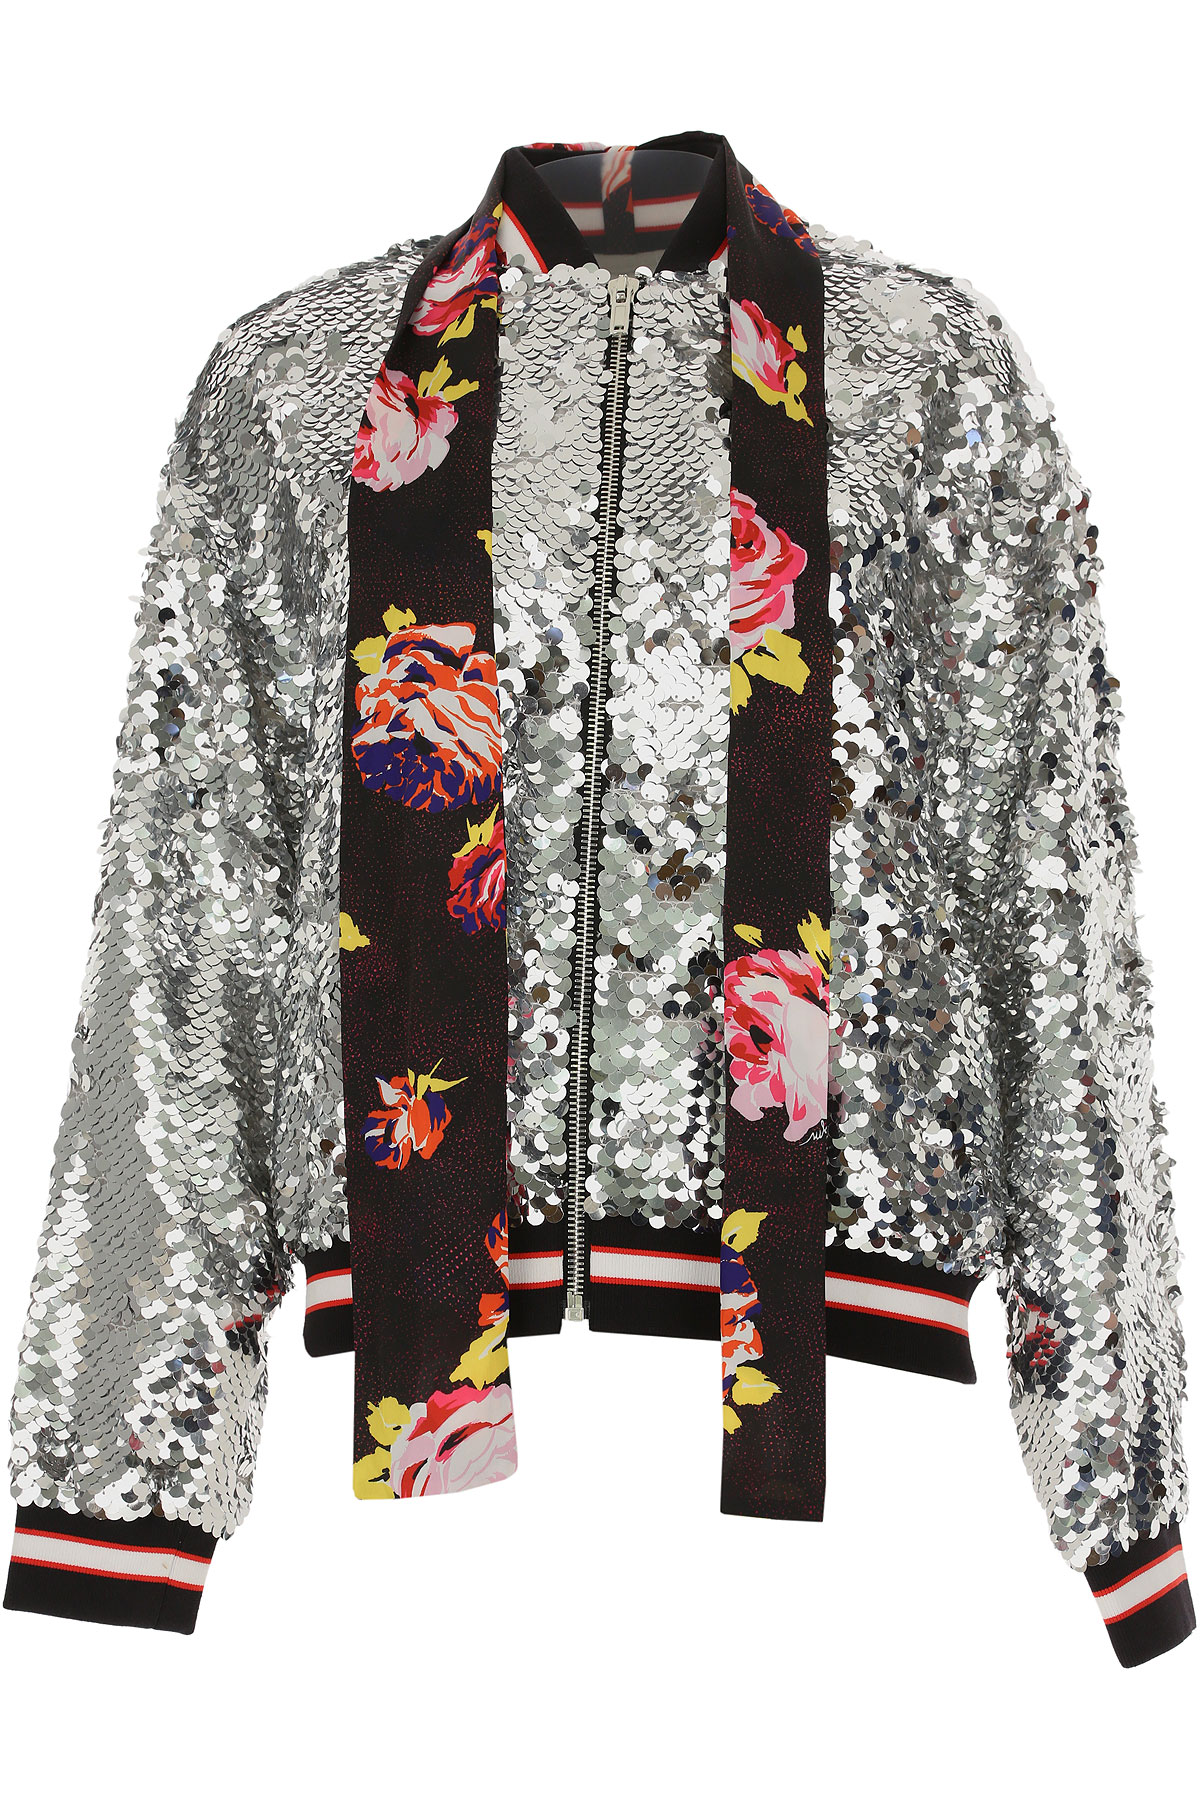 Image of MSGM Jacket for Women, Silver, polyamide, 2017, UK 6 - US 4 - EU 38 UK 8 - US 6 - EU 40